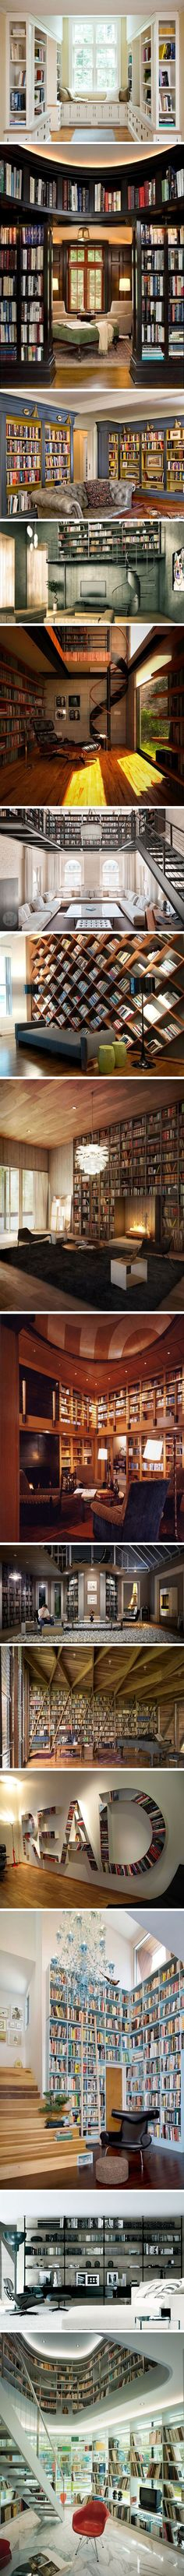 Book nooks/Library of my dreams More